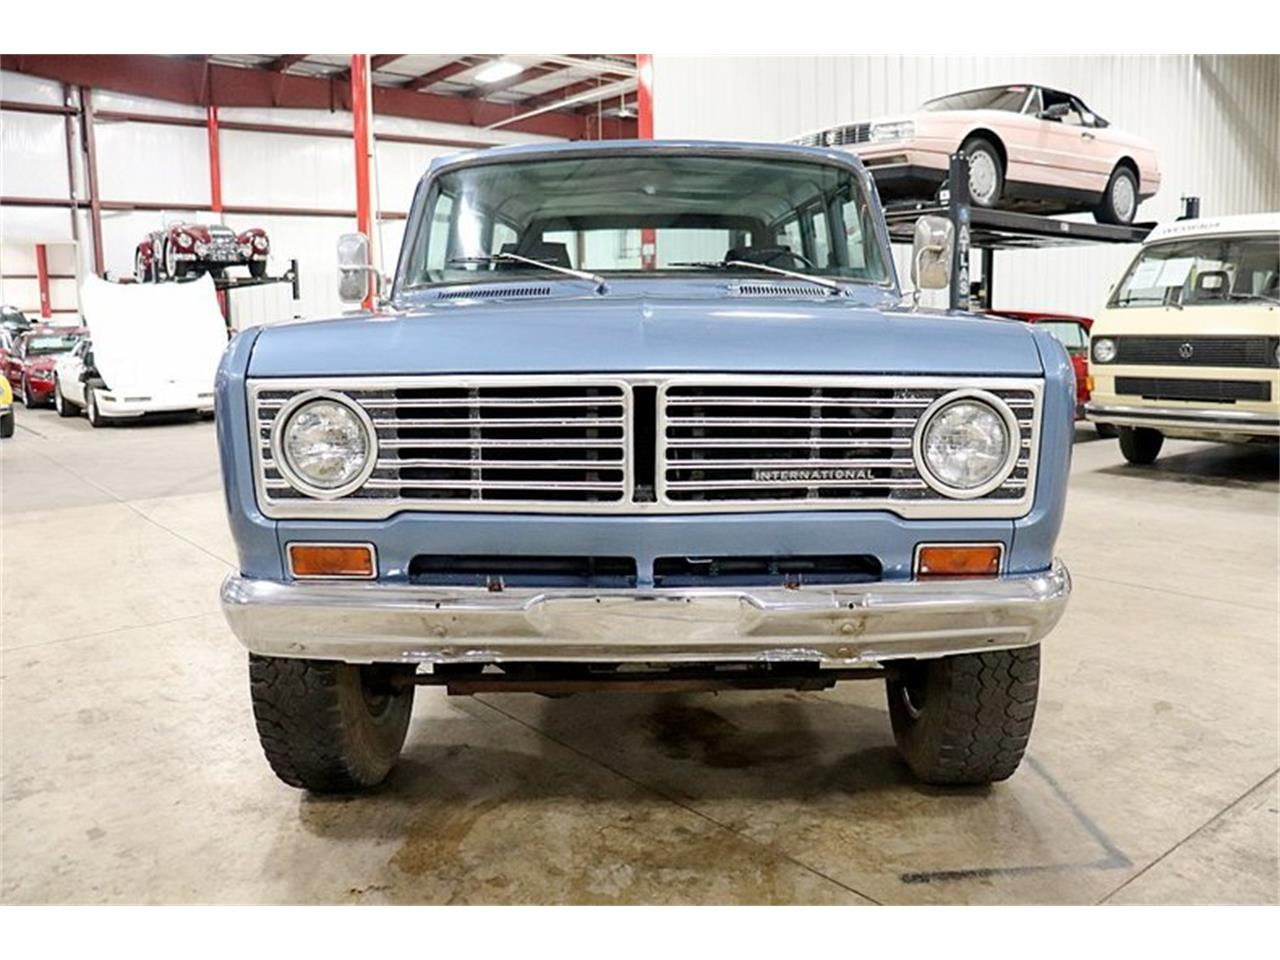 Large Picture of Classic '73 International Harvester located in Michigan - $19,900.00 - Q50E